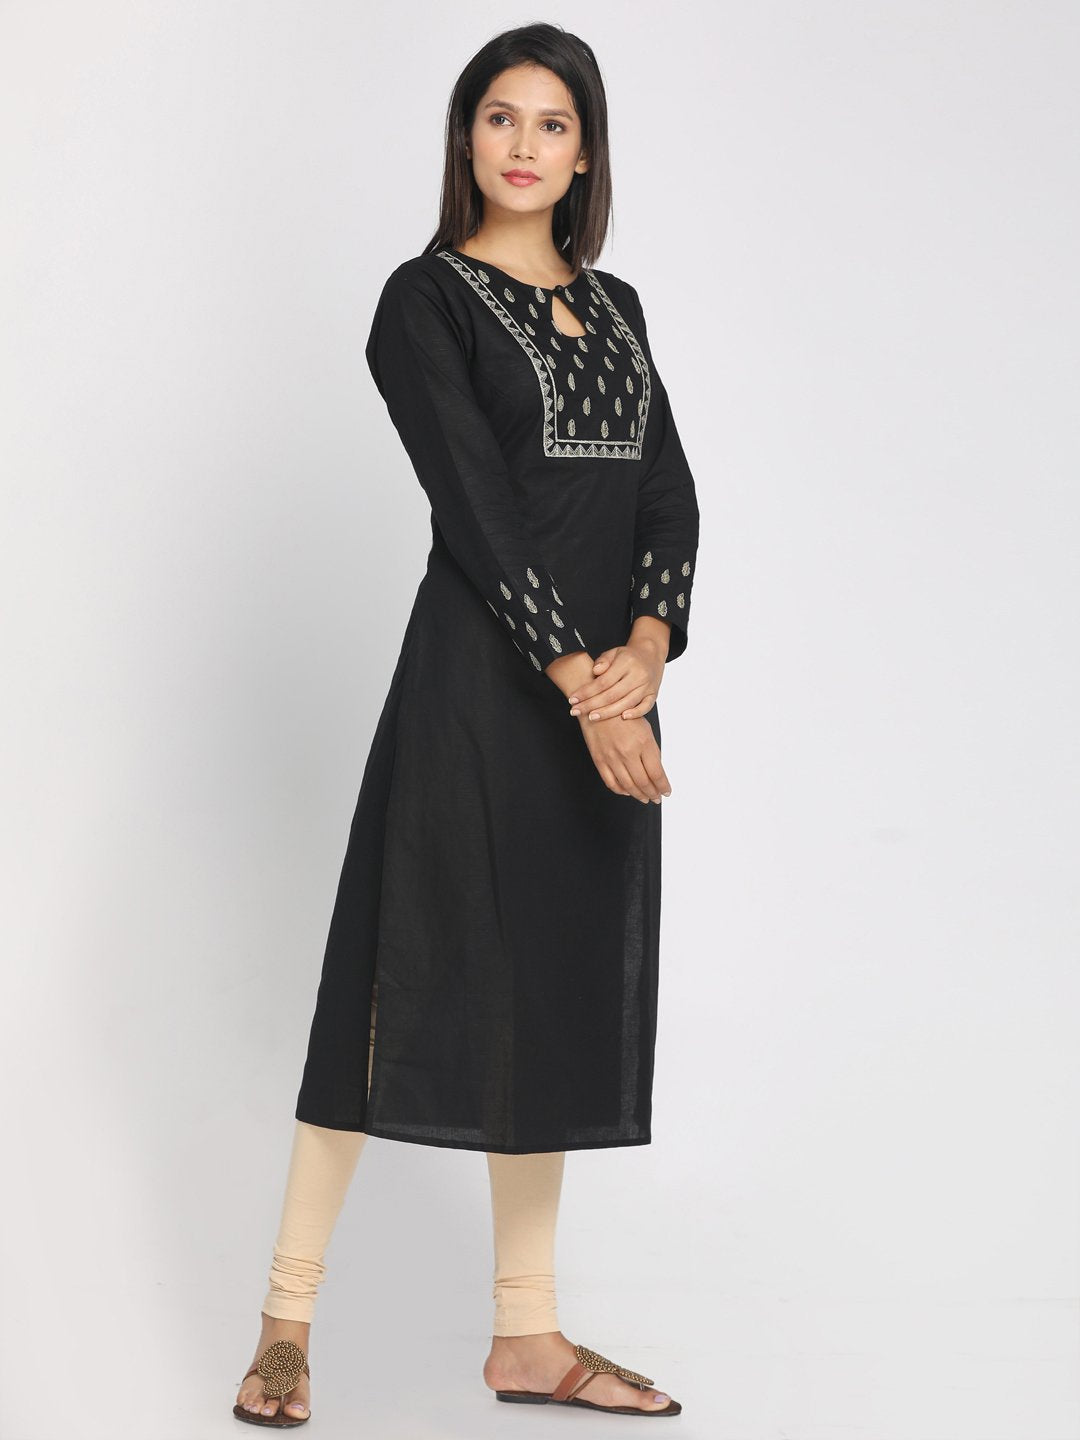 Zari embroidered Black Straight Long Kurta With Matching Mask